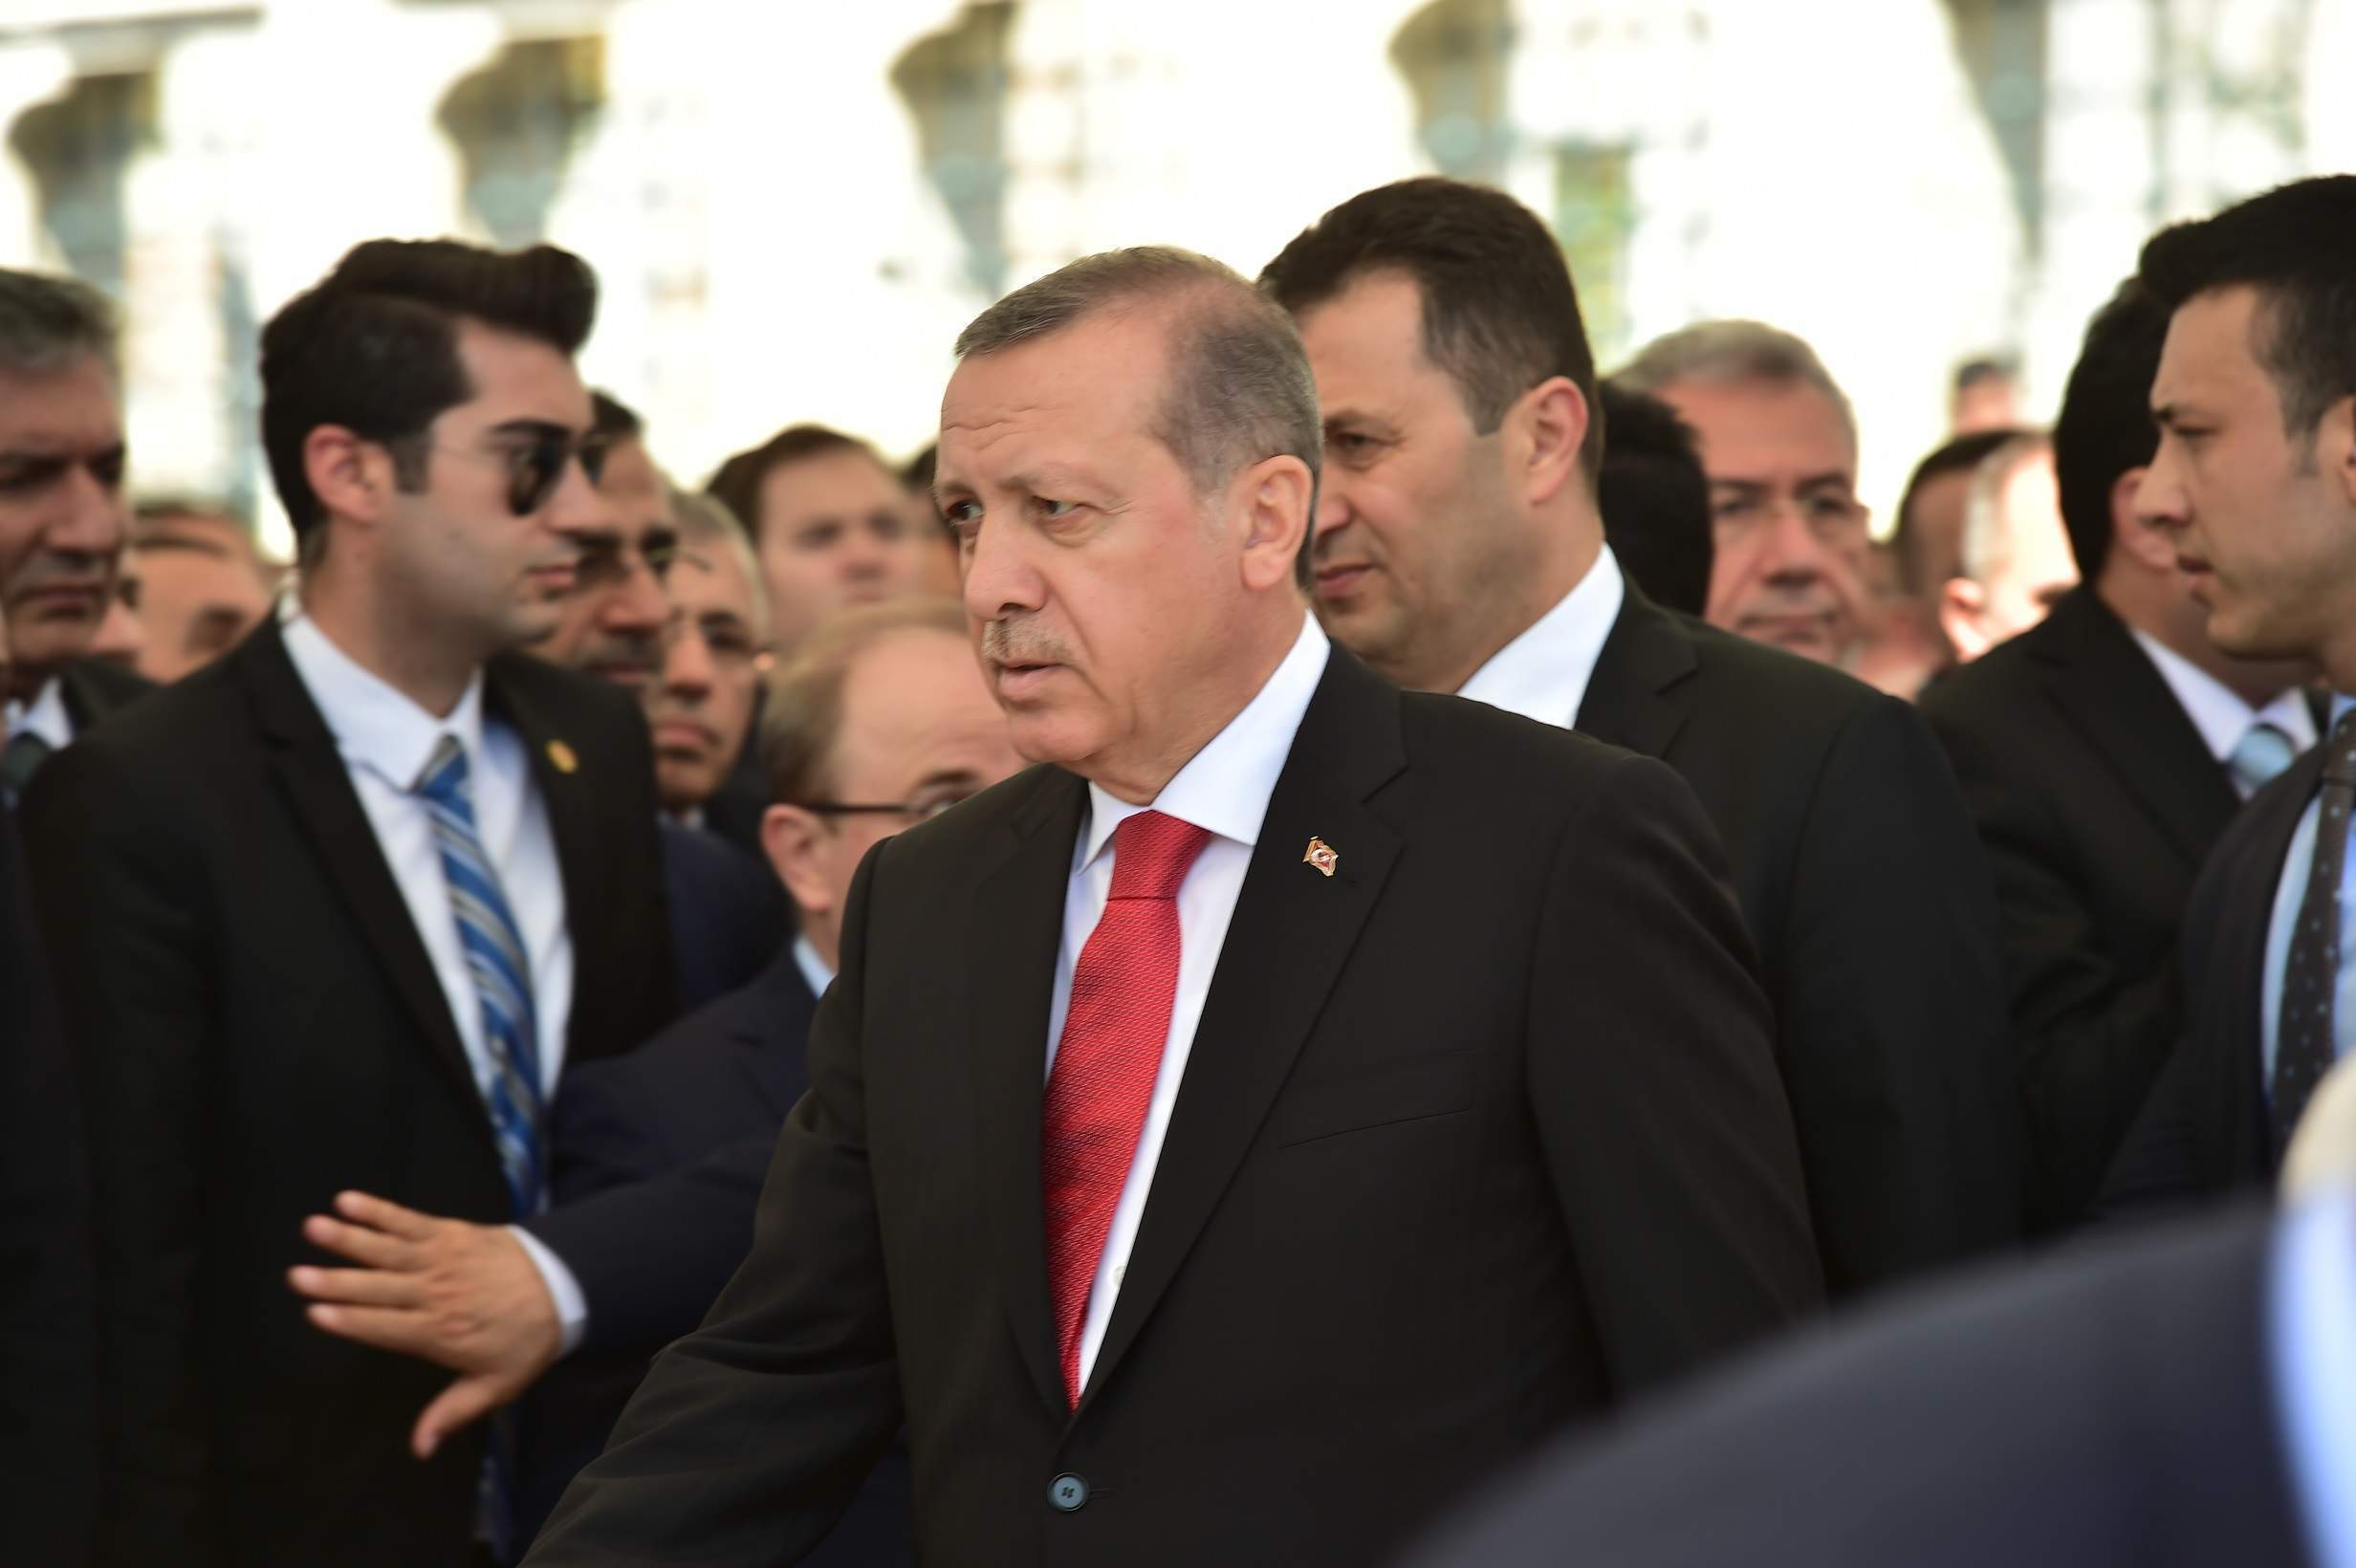 Turkey's state of emergency has been extended for another three months